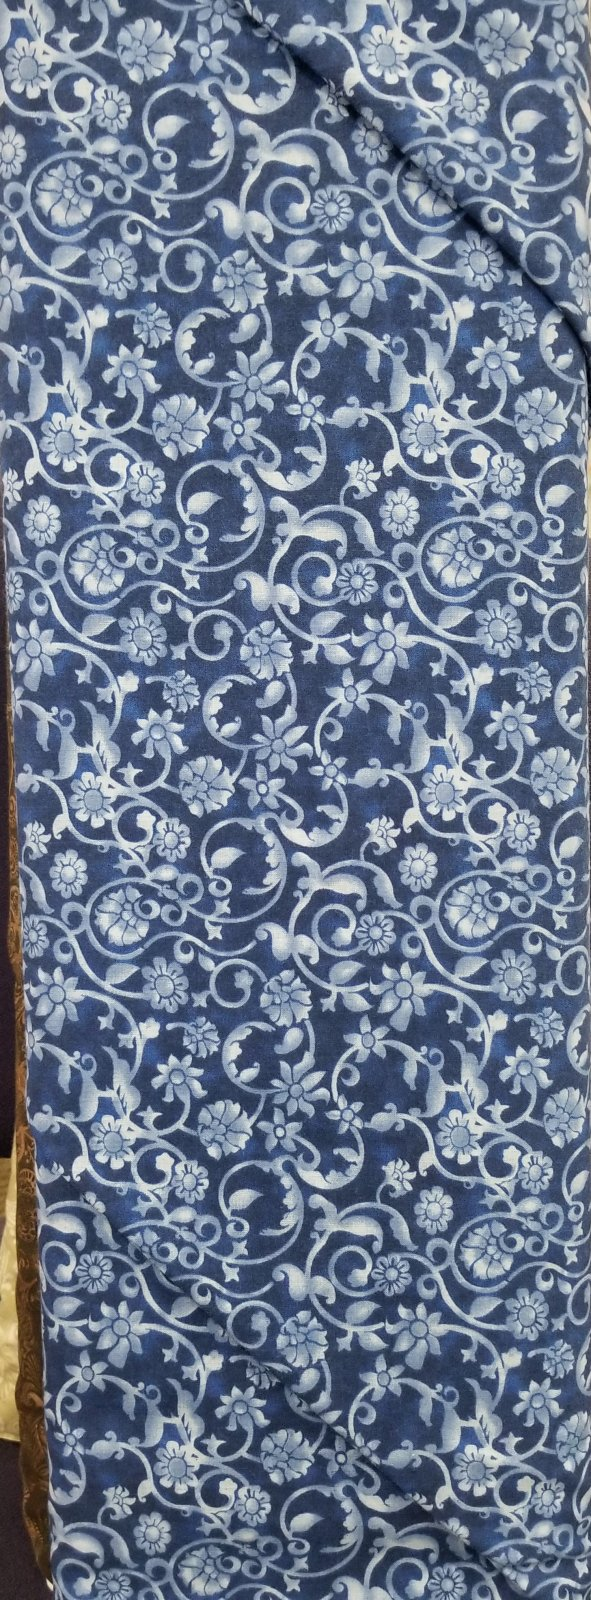 108 Floral Blue Quilt Backing